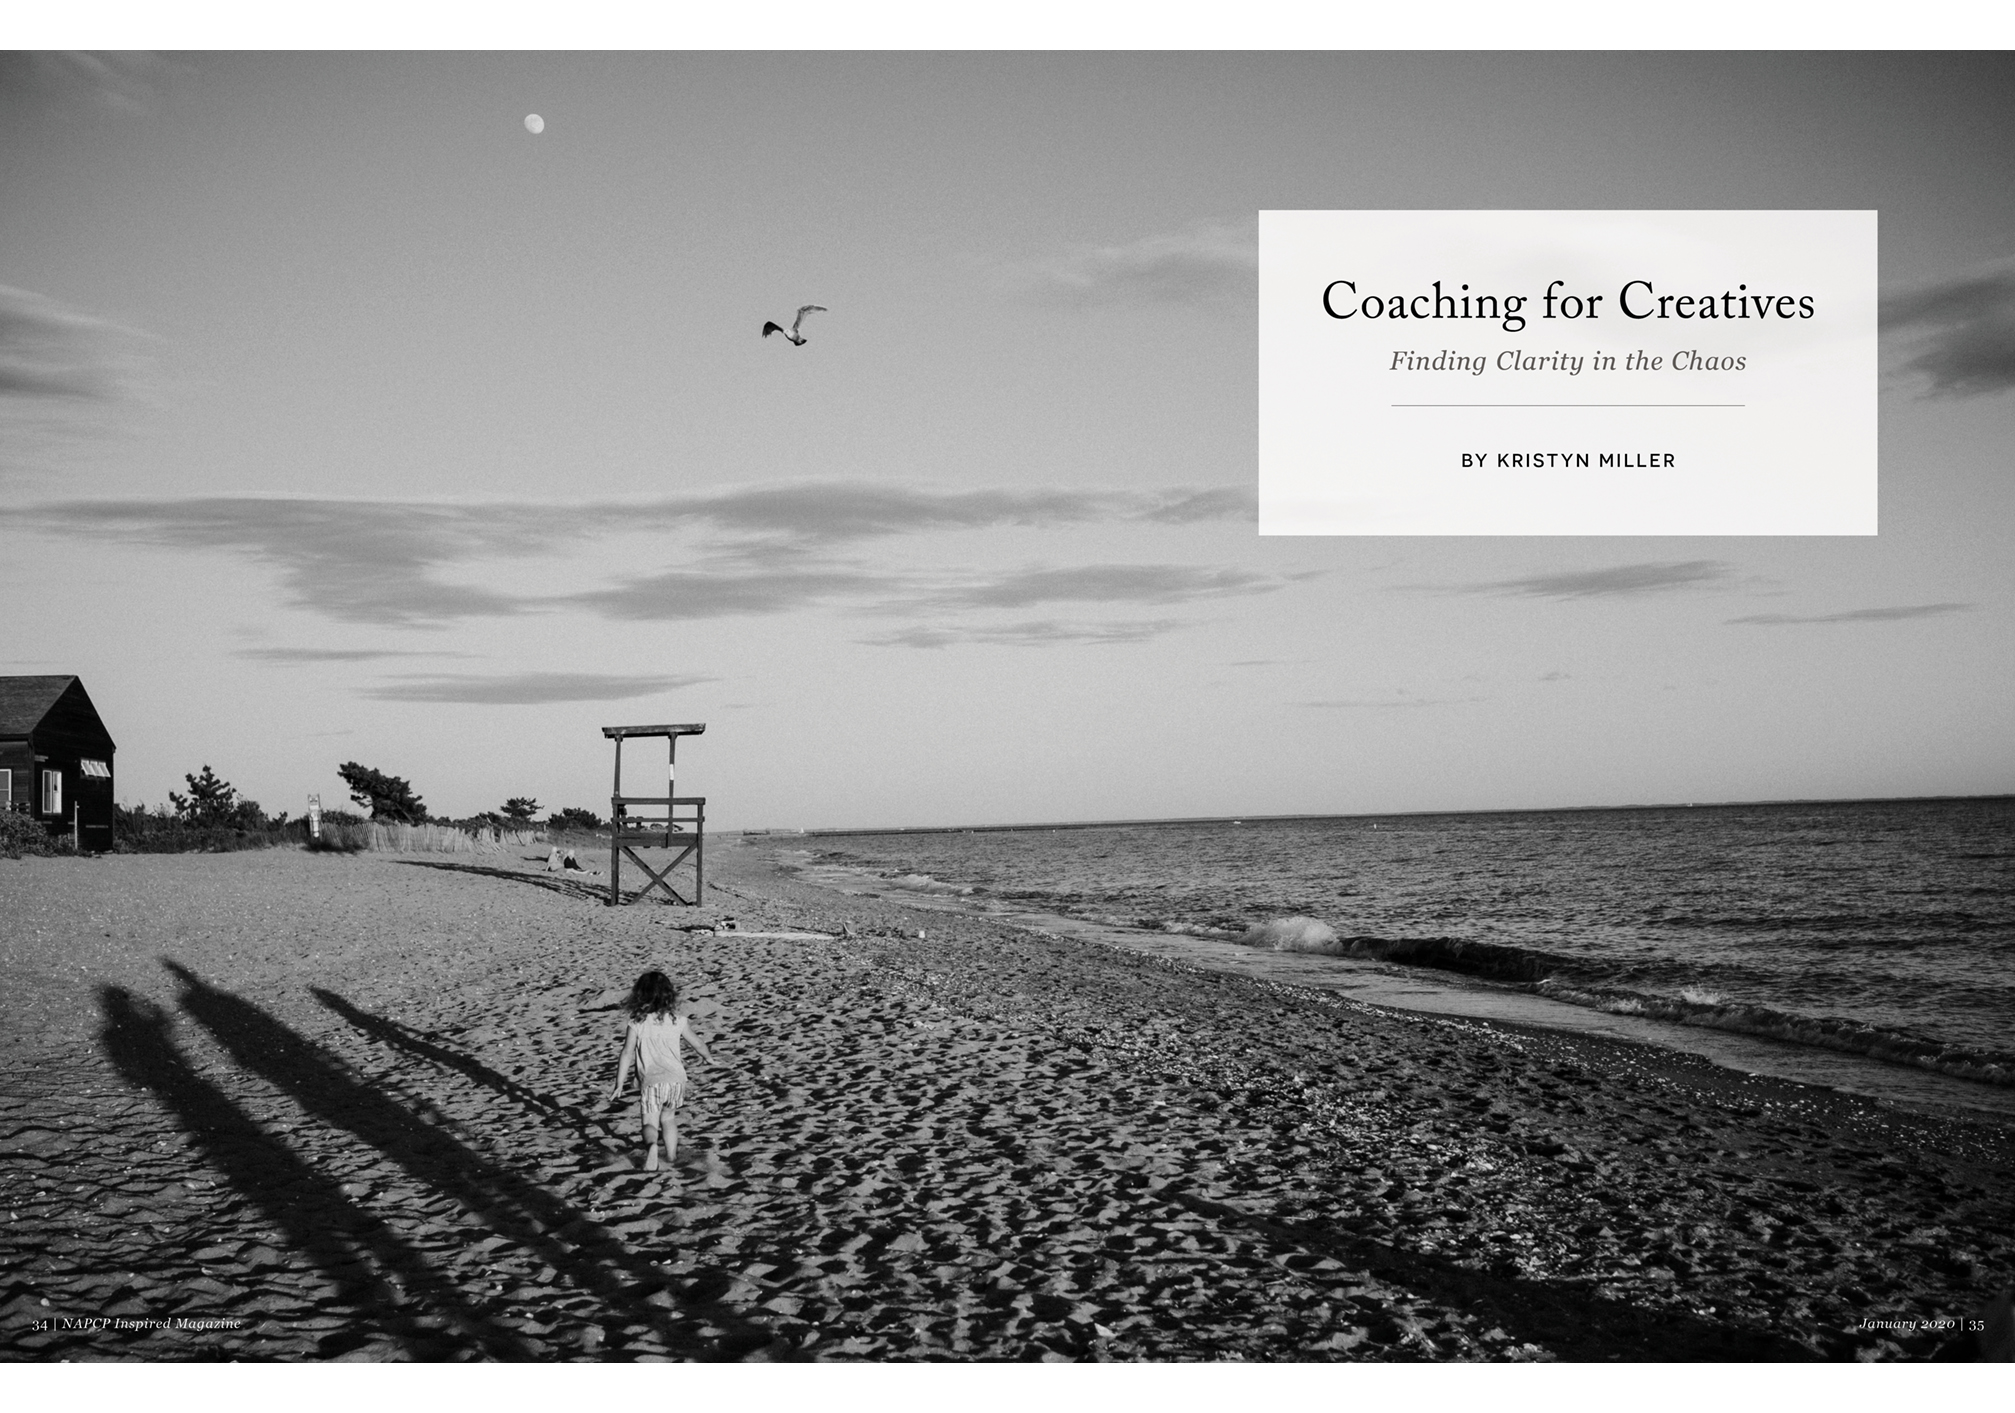 Coaching for Creatives, Finding Clarity in the Chaos, Kristyn Miller